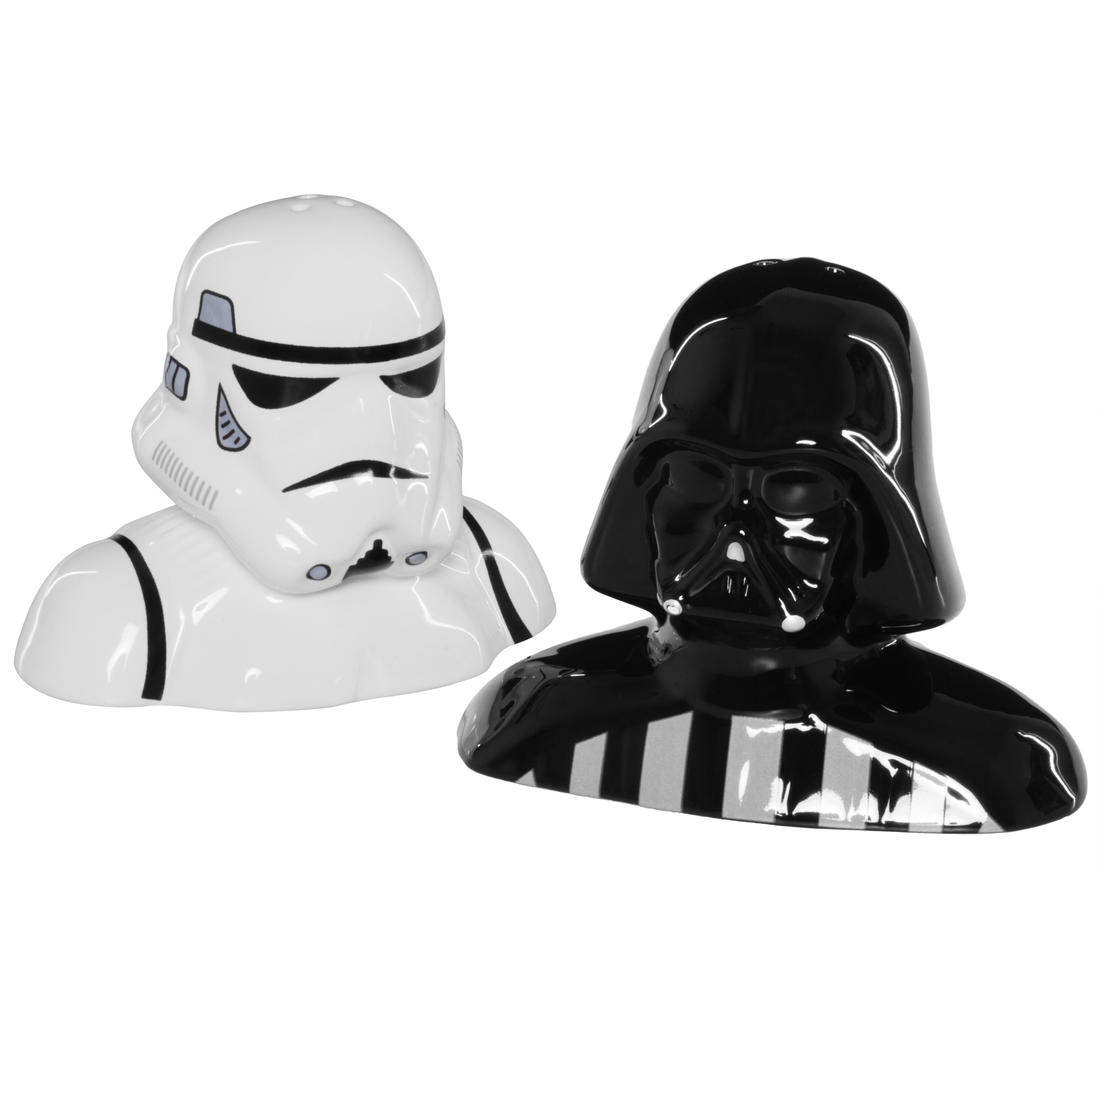 Darth vader and stormtrooper salt and pepper shaker getdigital - Darth vader and stormtrooper salt and pepper shakers ...